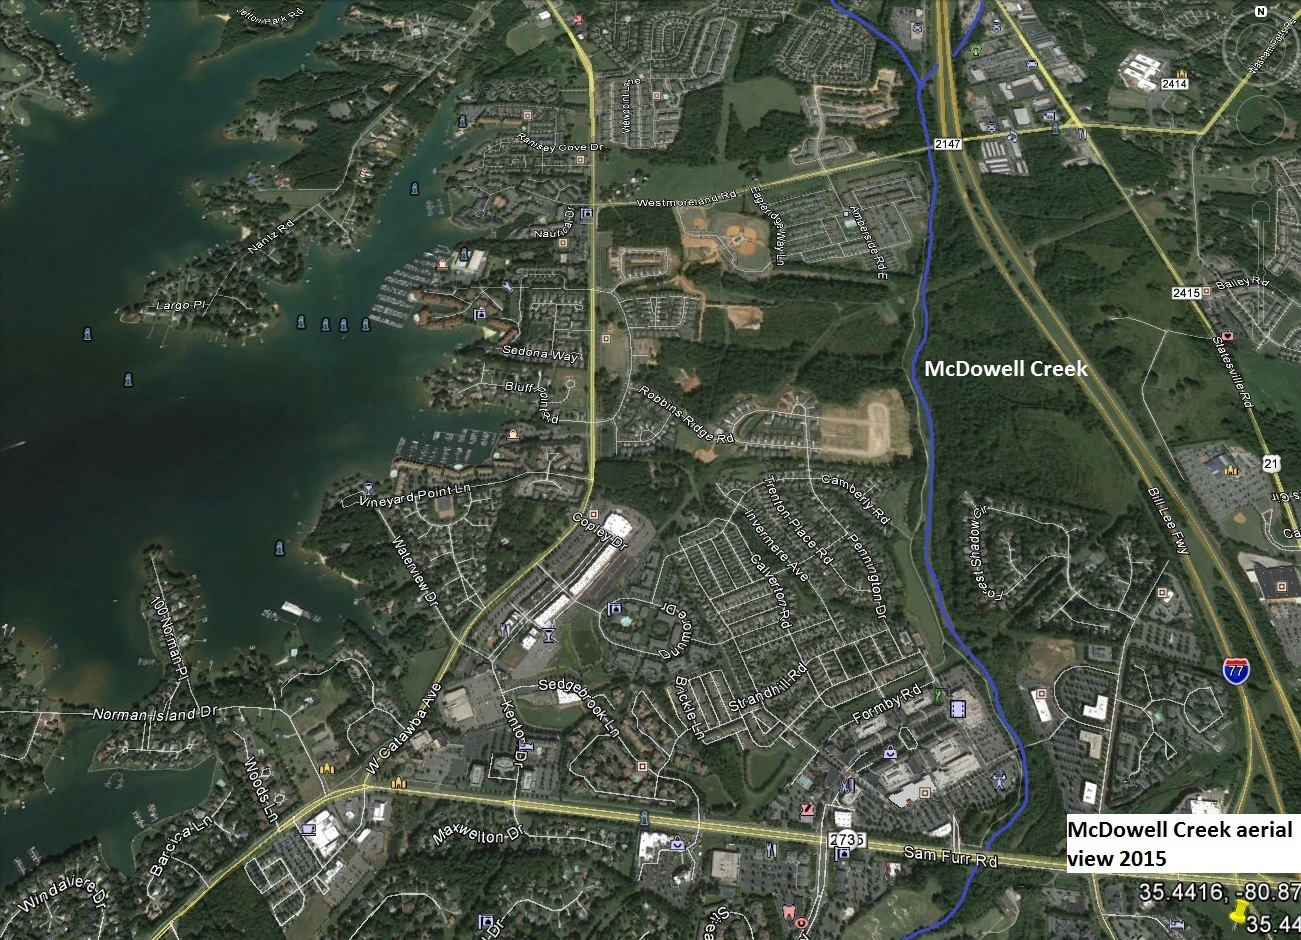 This Google maps image shows the massive development in the same area.